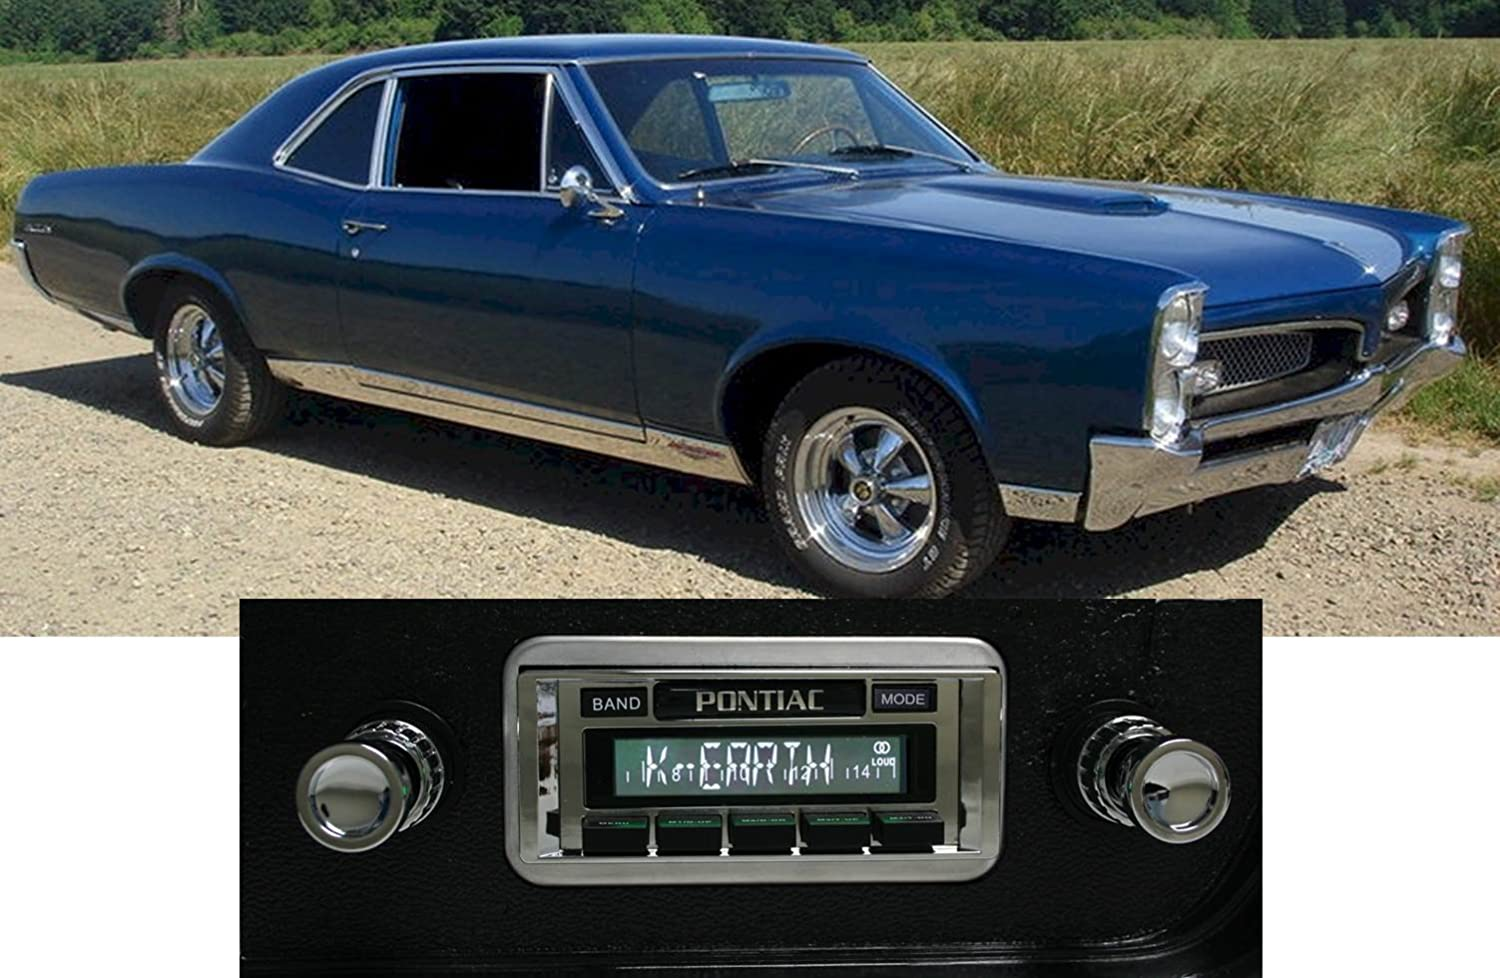 Custom Autosound Stereo compatible with 1967 GTO LeMans Tempest USA-630 II High Power 300 watt AM FM Car Stereo//Radio with auxiliary input